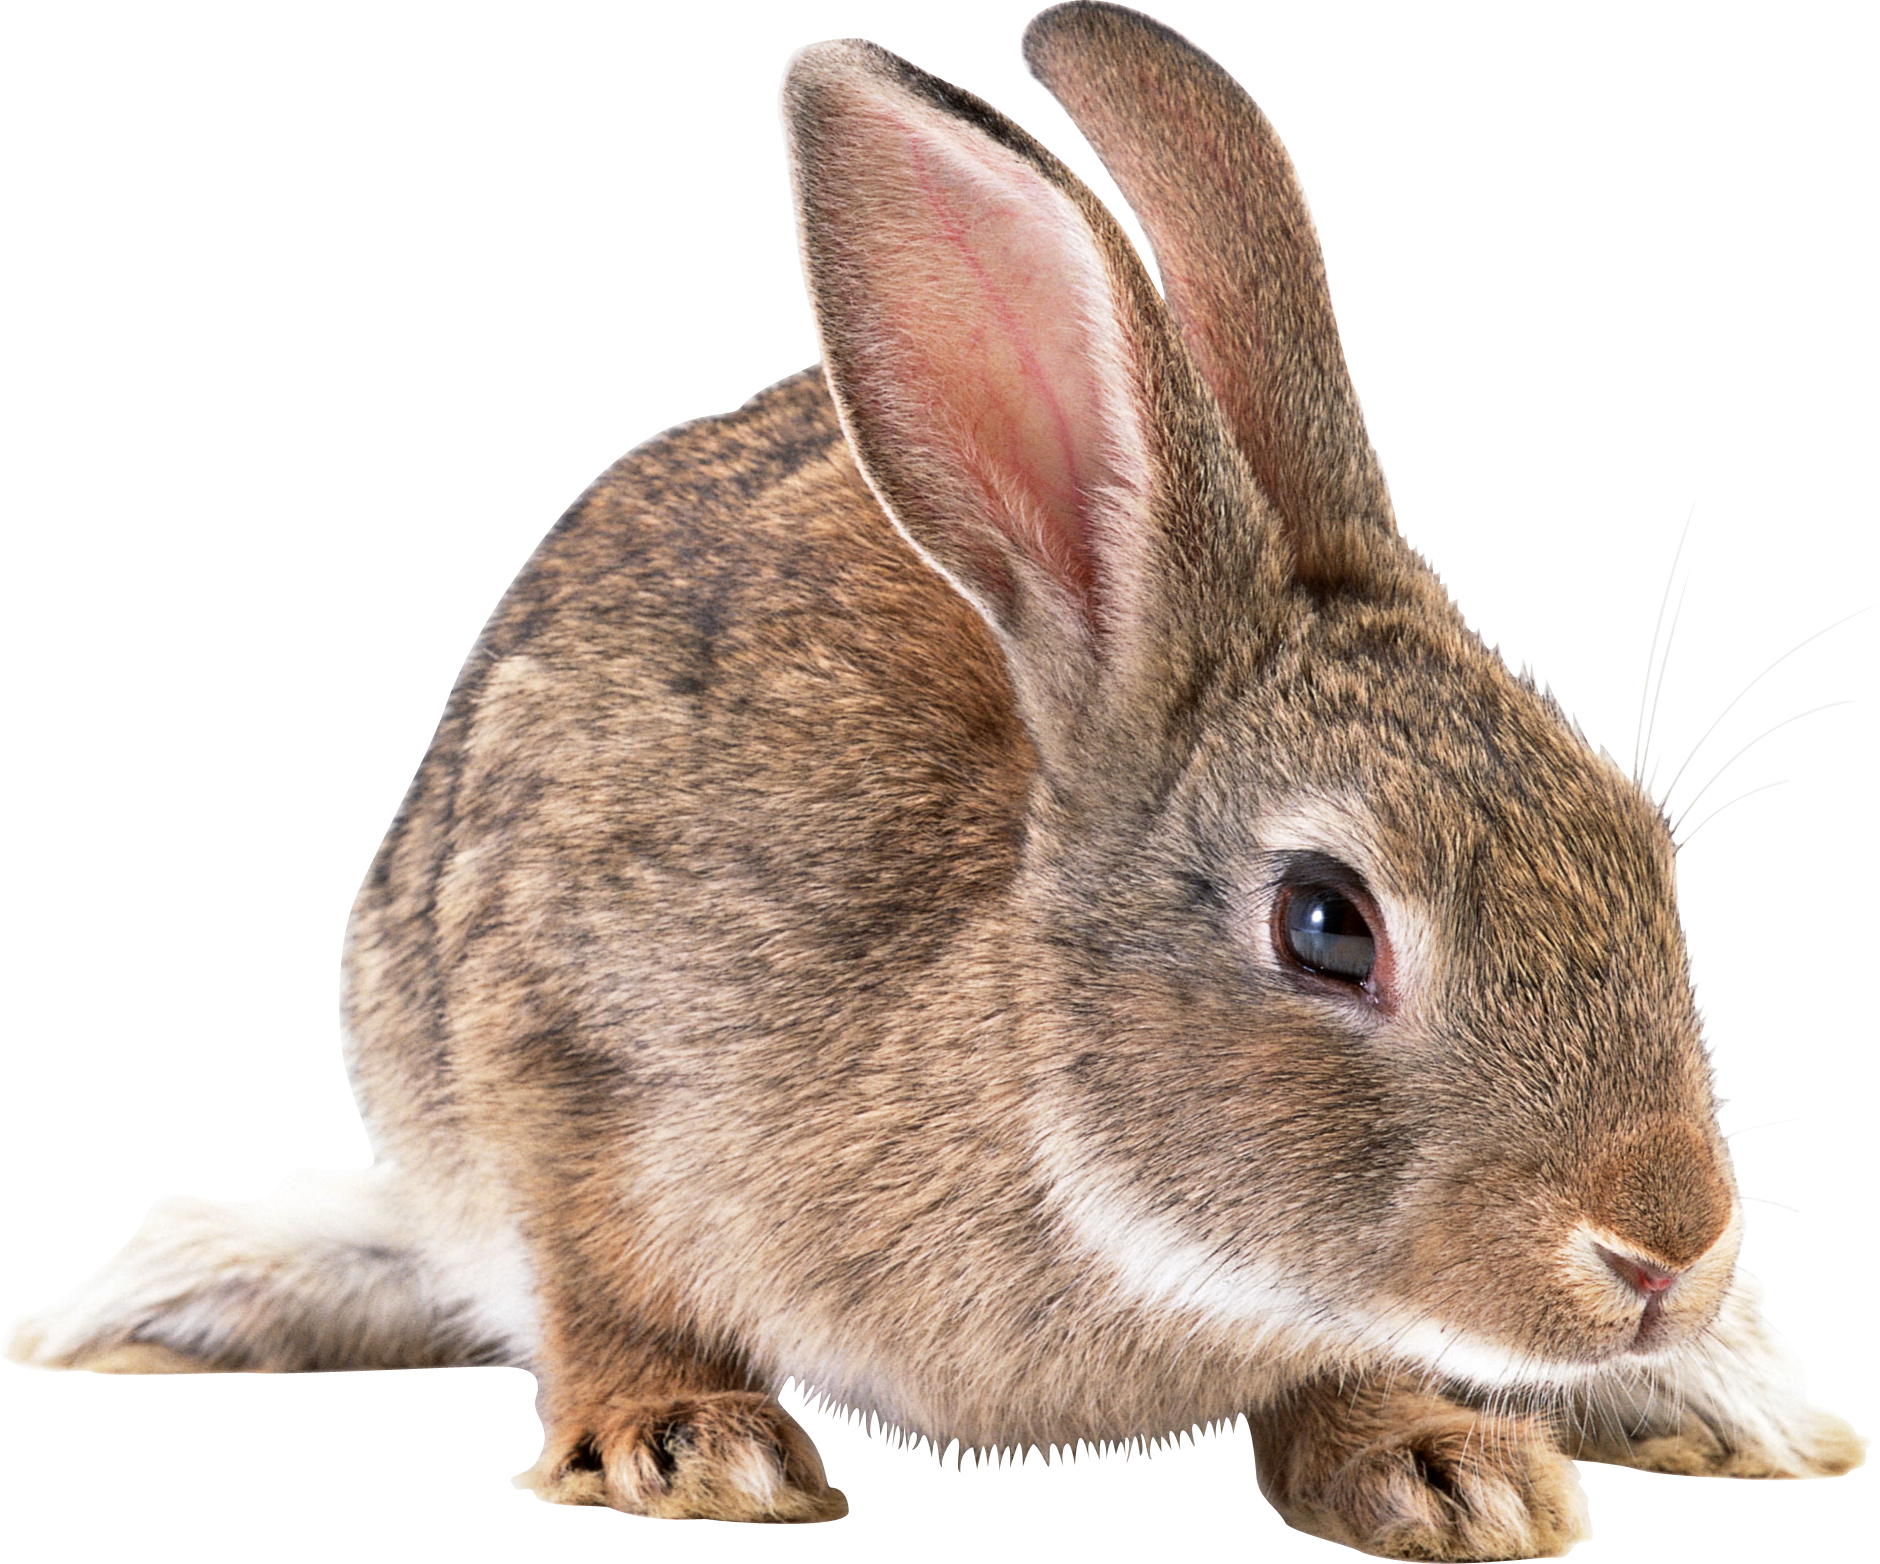 Bunny PNG - 27619